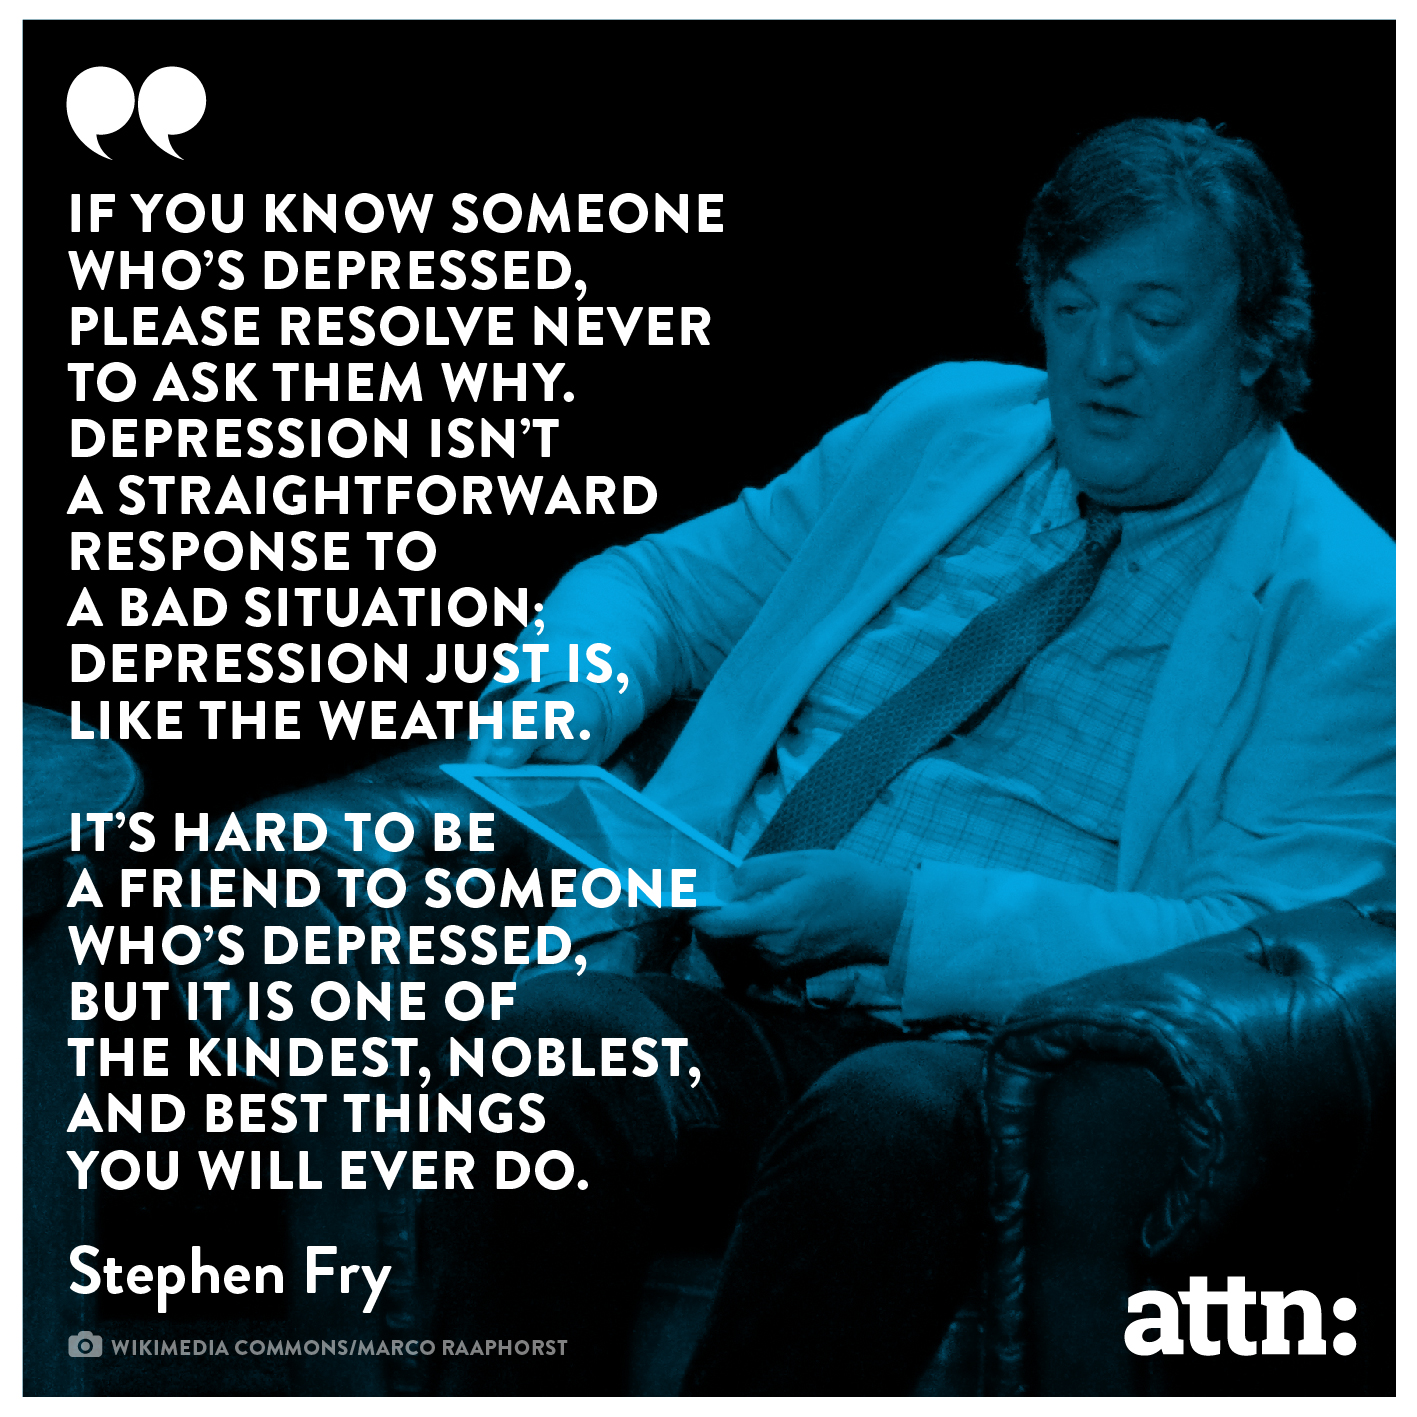 Stephen Fry mental illness